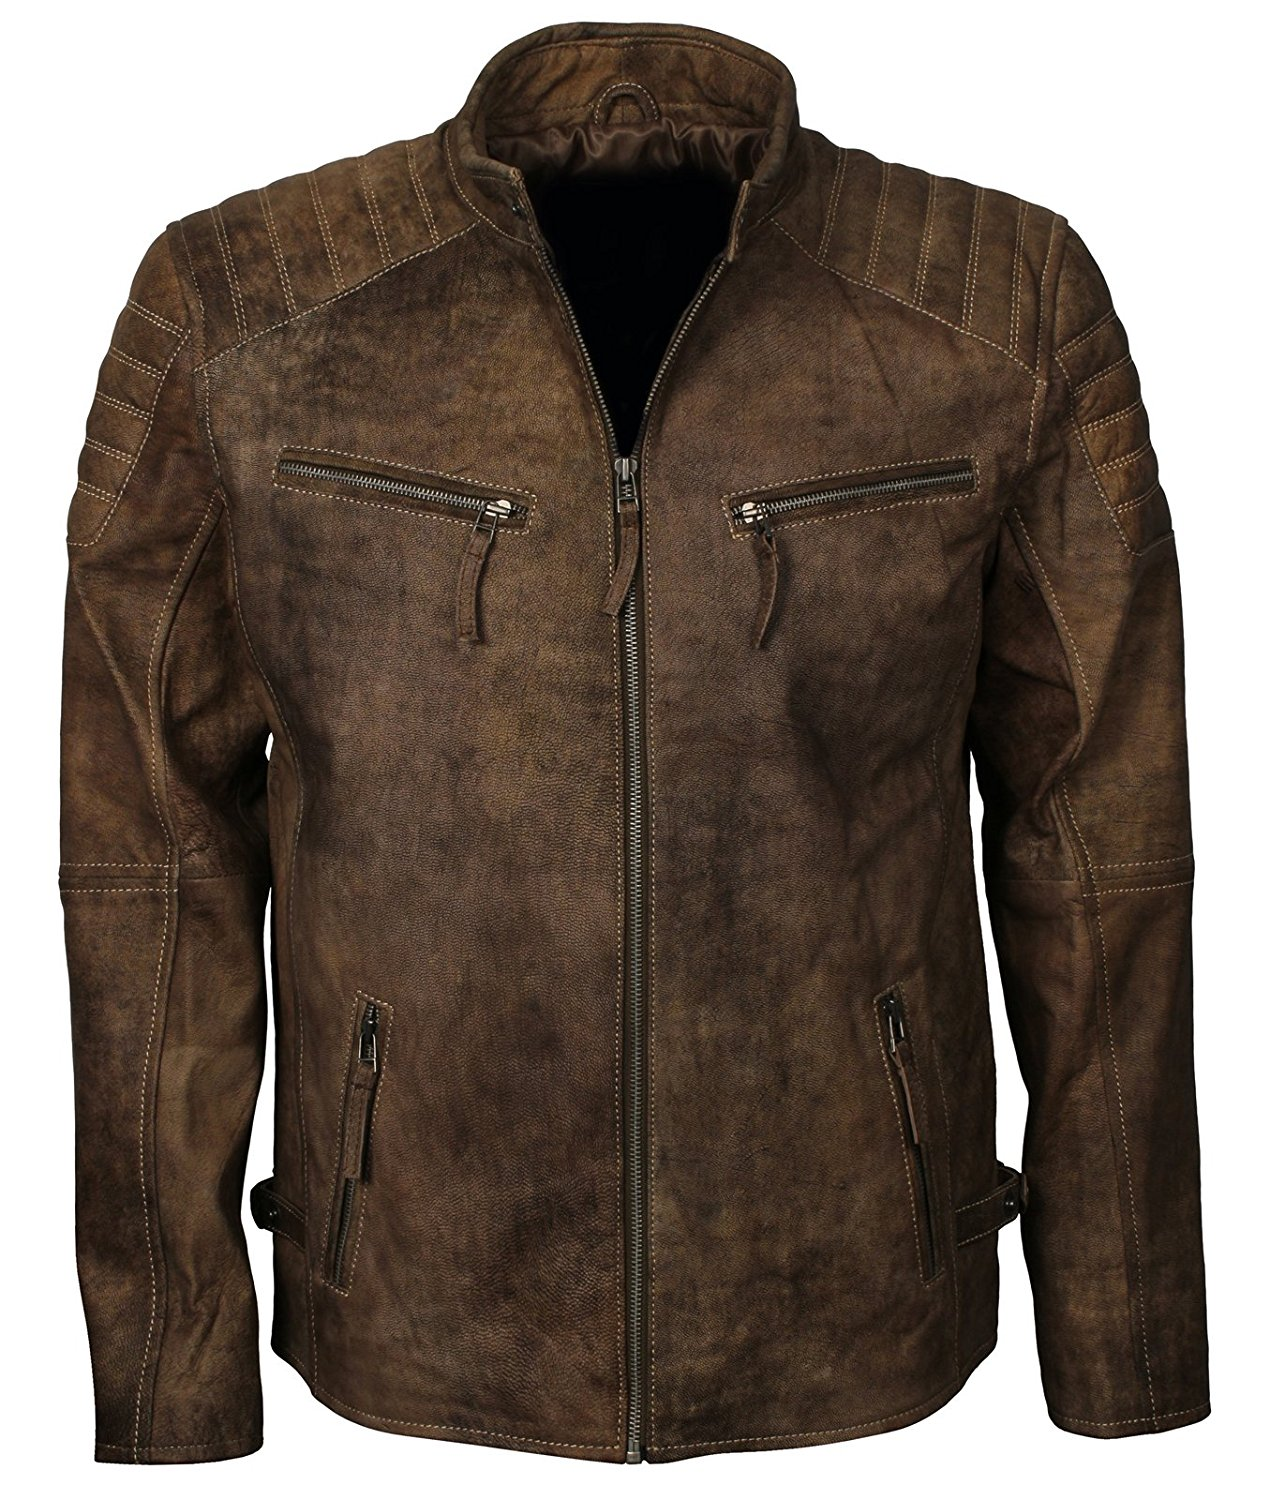 Herts Leather Retro Classic Italian Style HQ Mens Real Distressed Leather Jacket